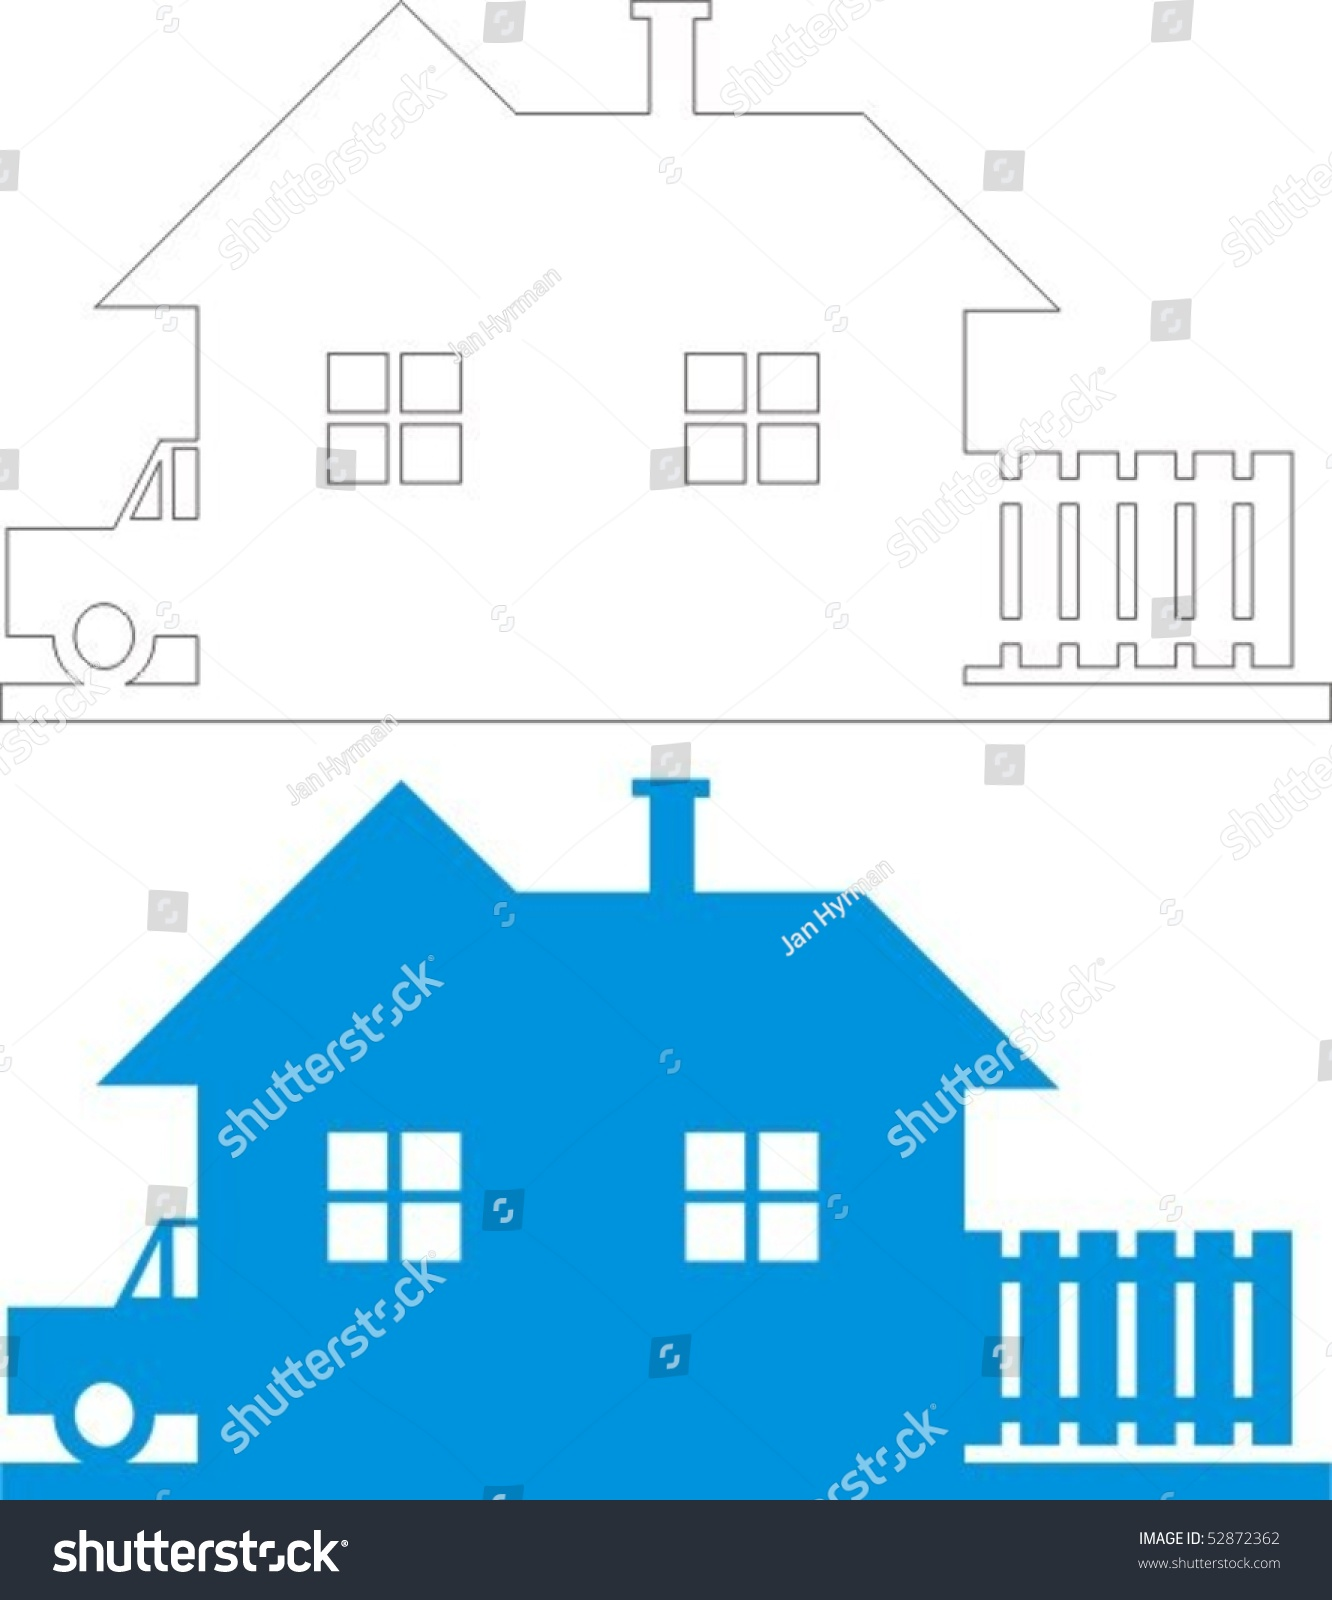 House black and white line drawing and colour clip art illustration